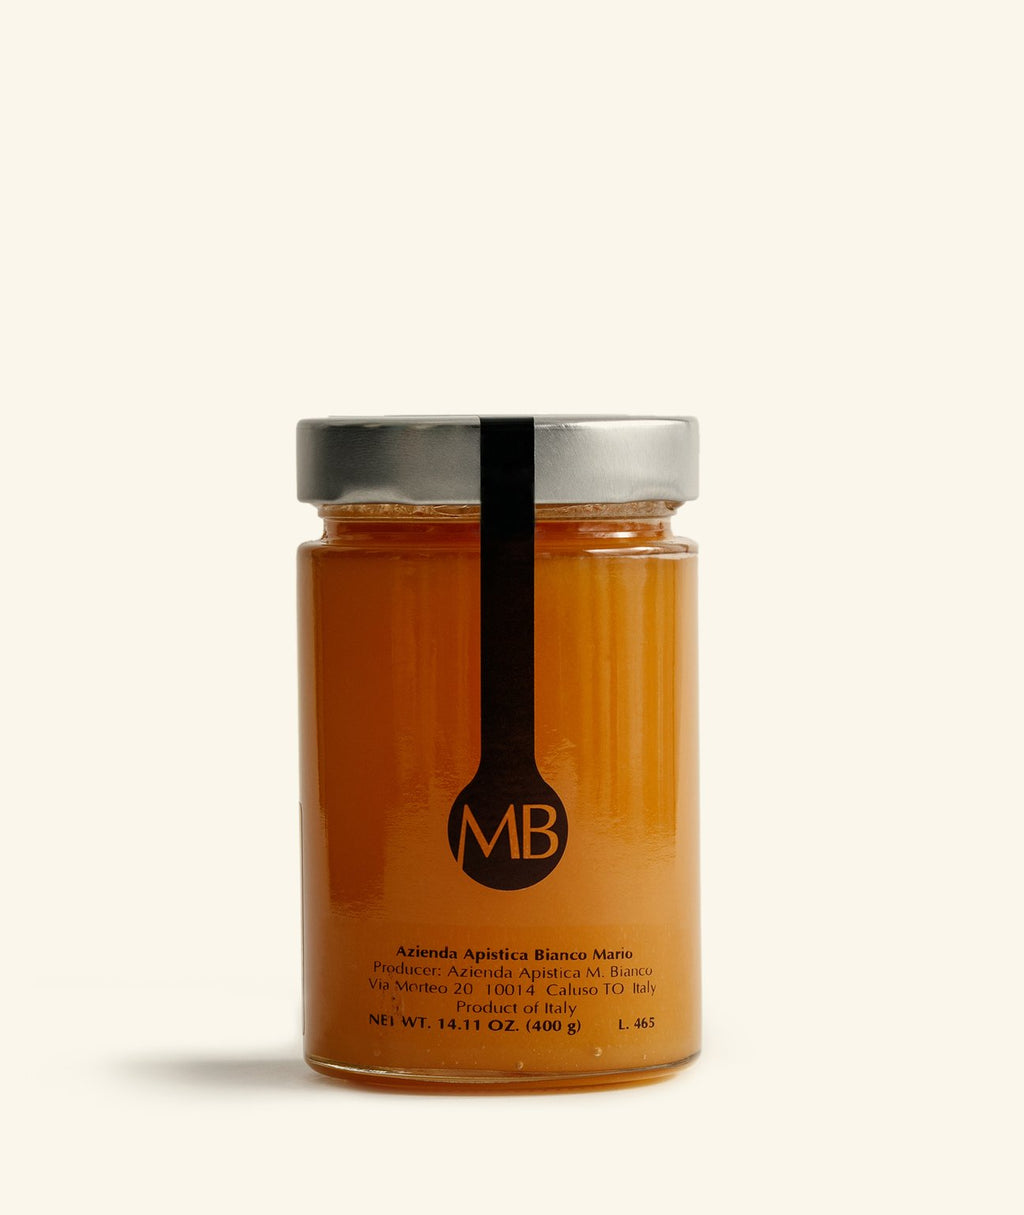 Miele di Tiglio - Lime Blossom Honey